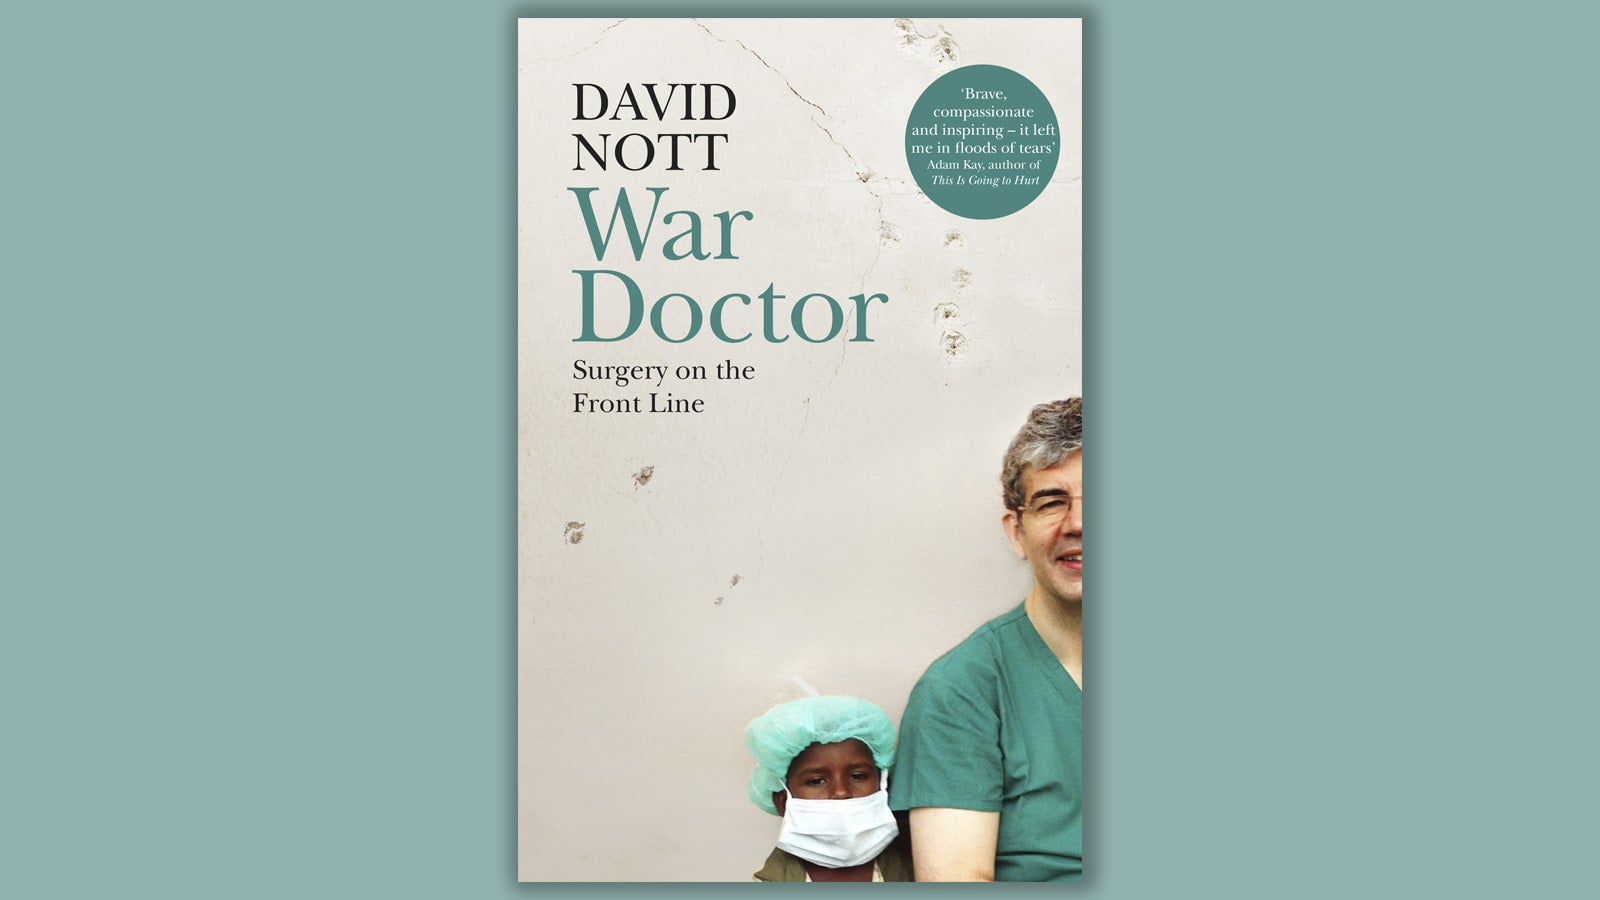 David Nott War Doctor book cover on a teal background